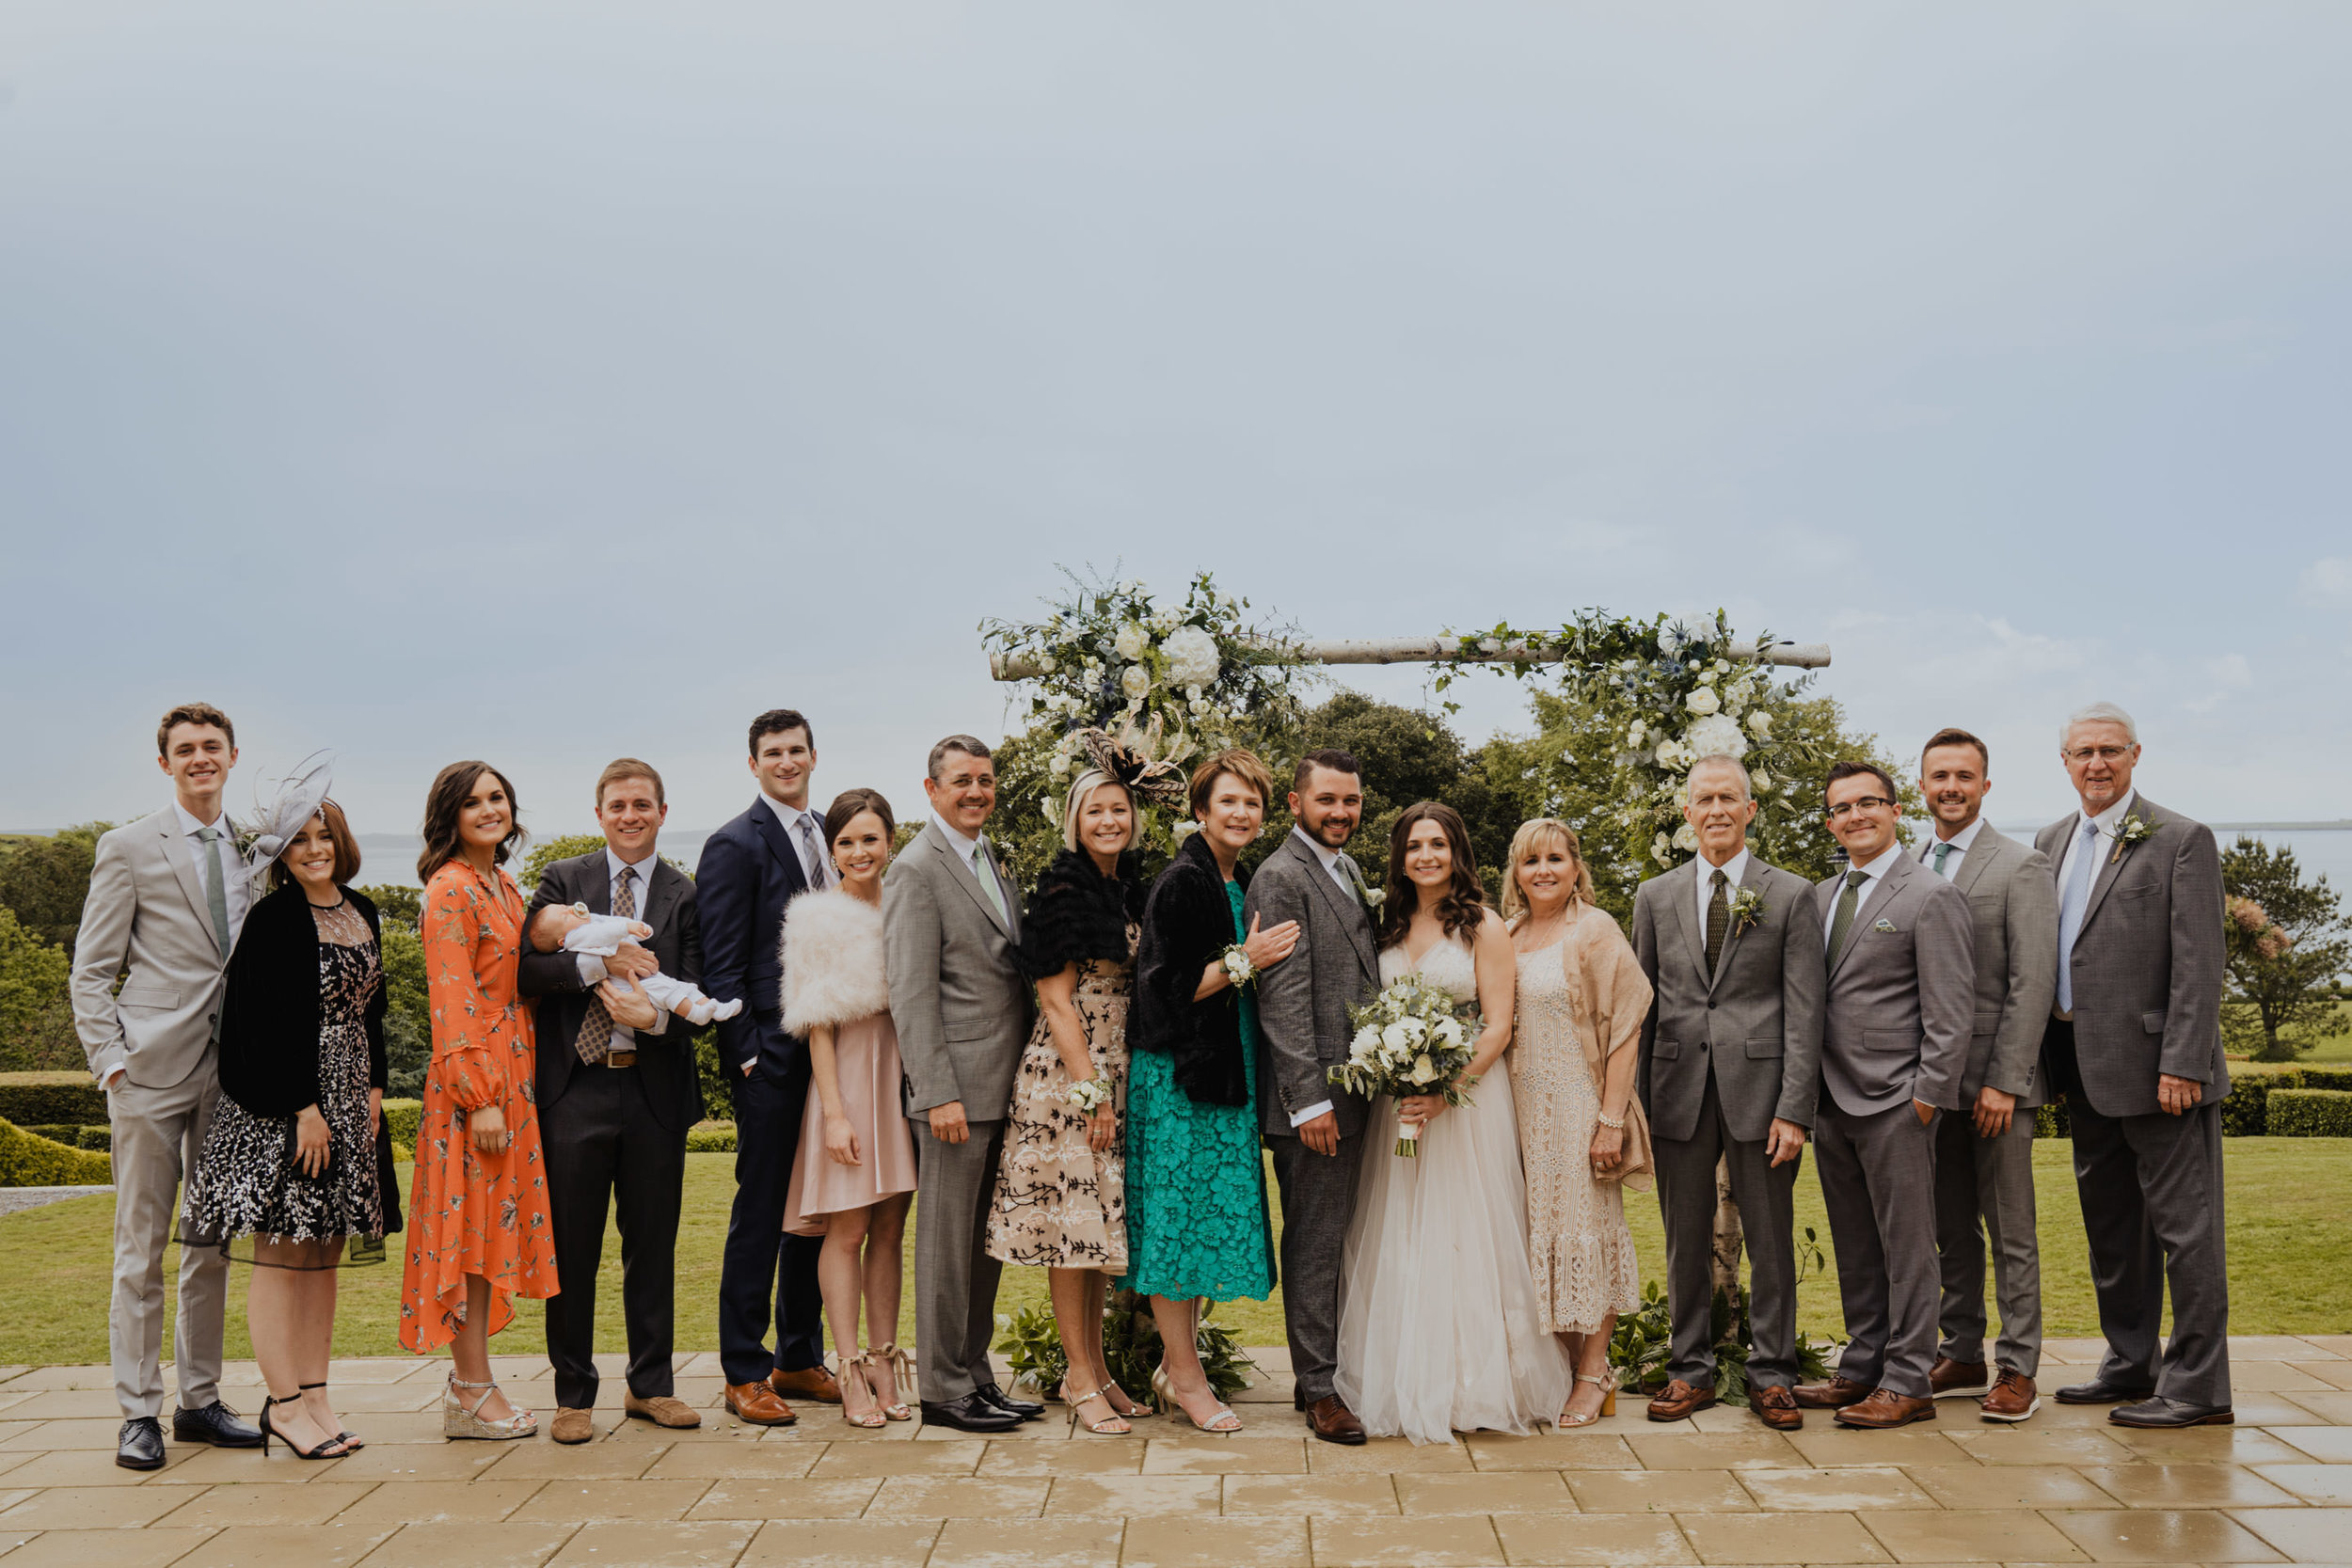 l-a-the-haven-dunmore-east-wedding-photographer-livia-figueiredo-12.jpg